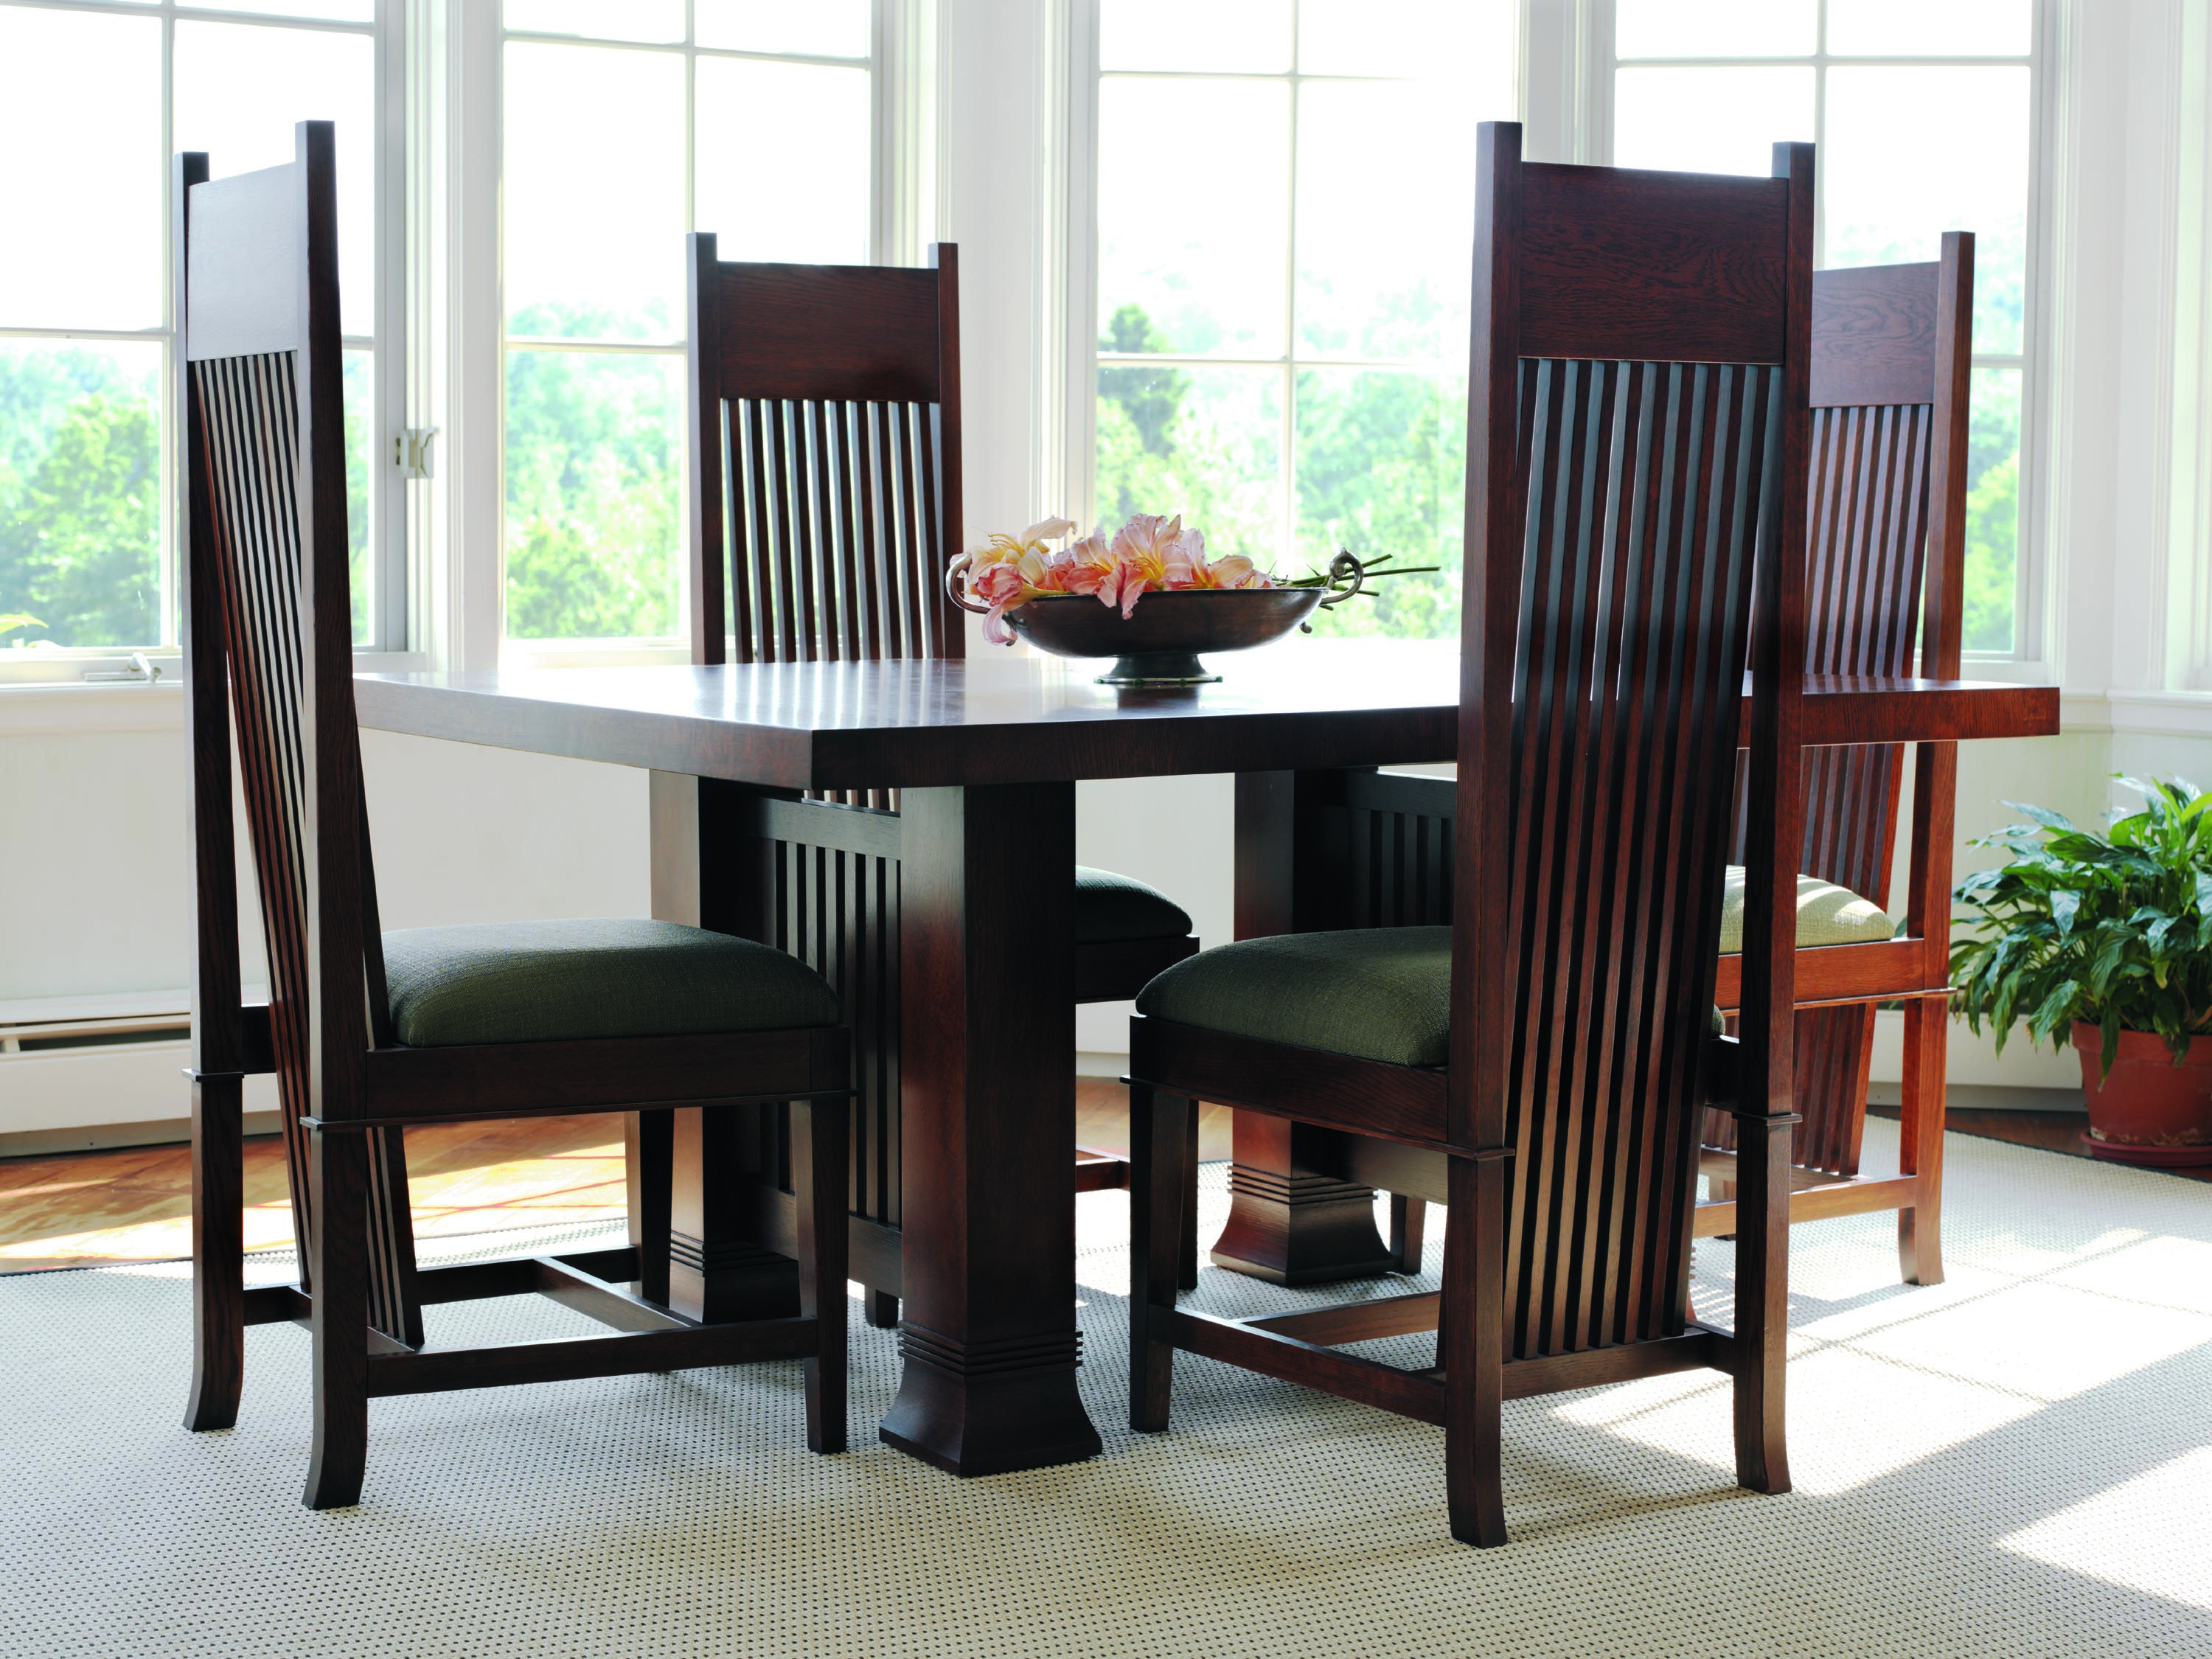 Frank Lloyd Wright Furniture | Frank Lloyd Wright® Furniture By Copeland  Dana Thomas Dining